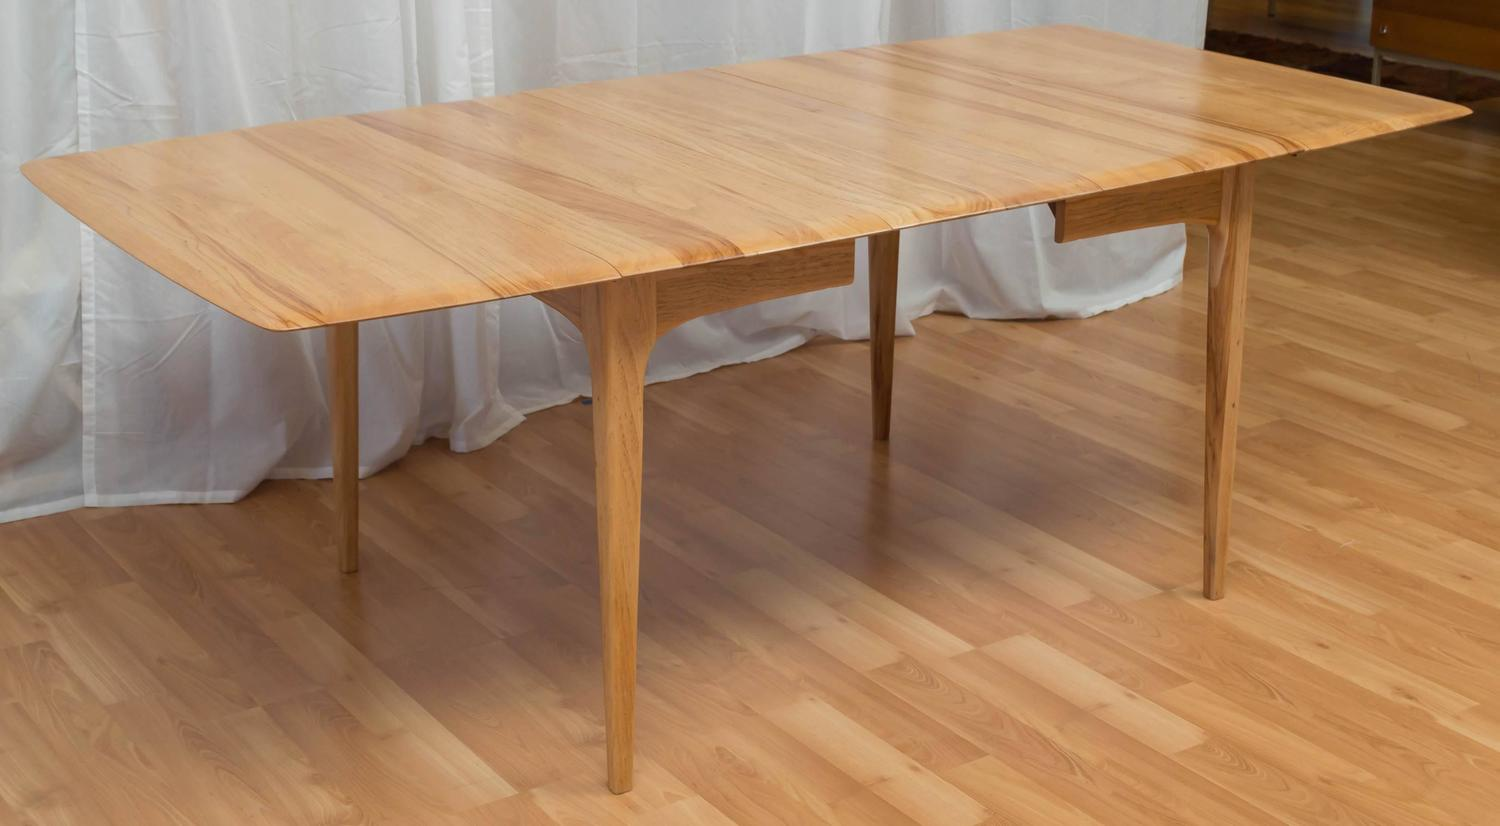 wood drop leaf dining table in the manner of heywood wakefield image 3